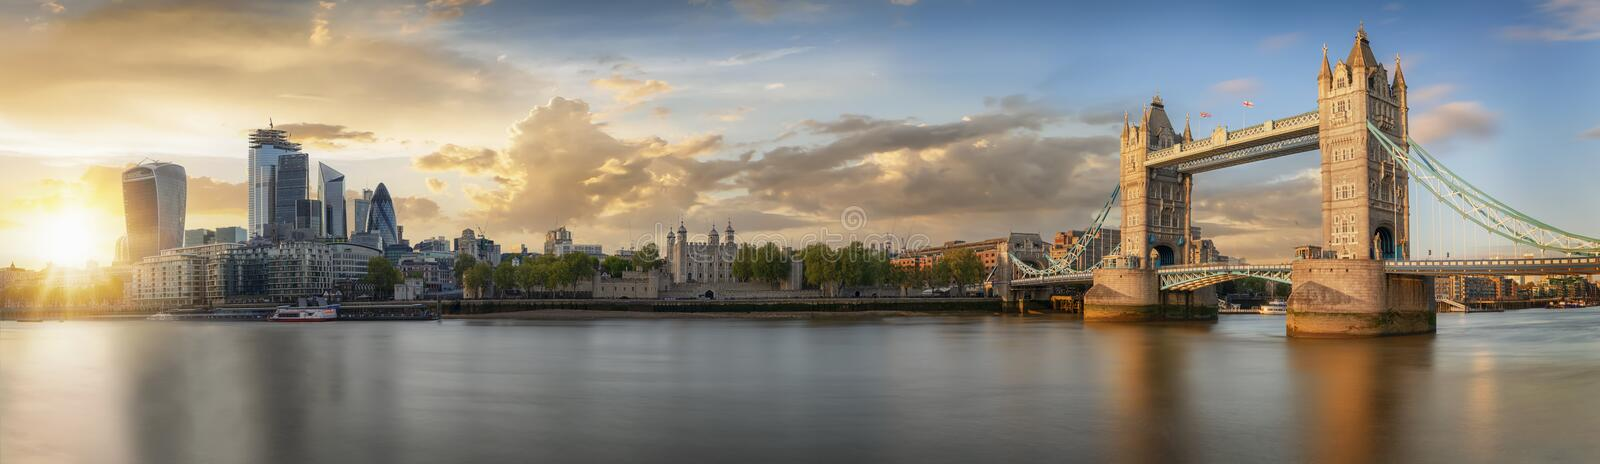 From the Tower Bridge to the skyscrapers of the City, United Kingdom royalty free stock images